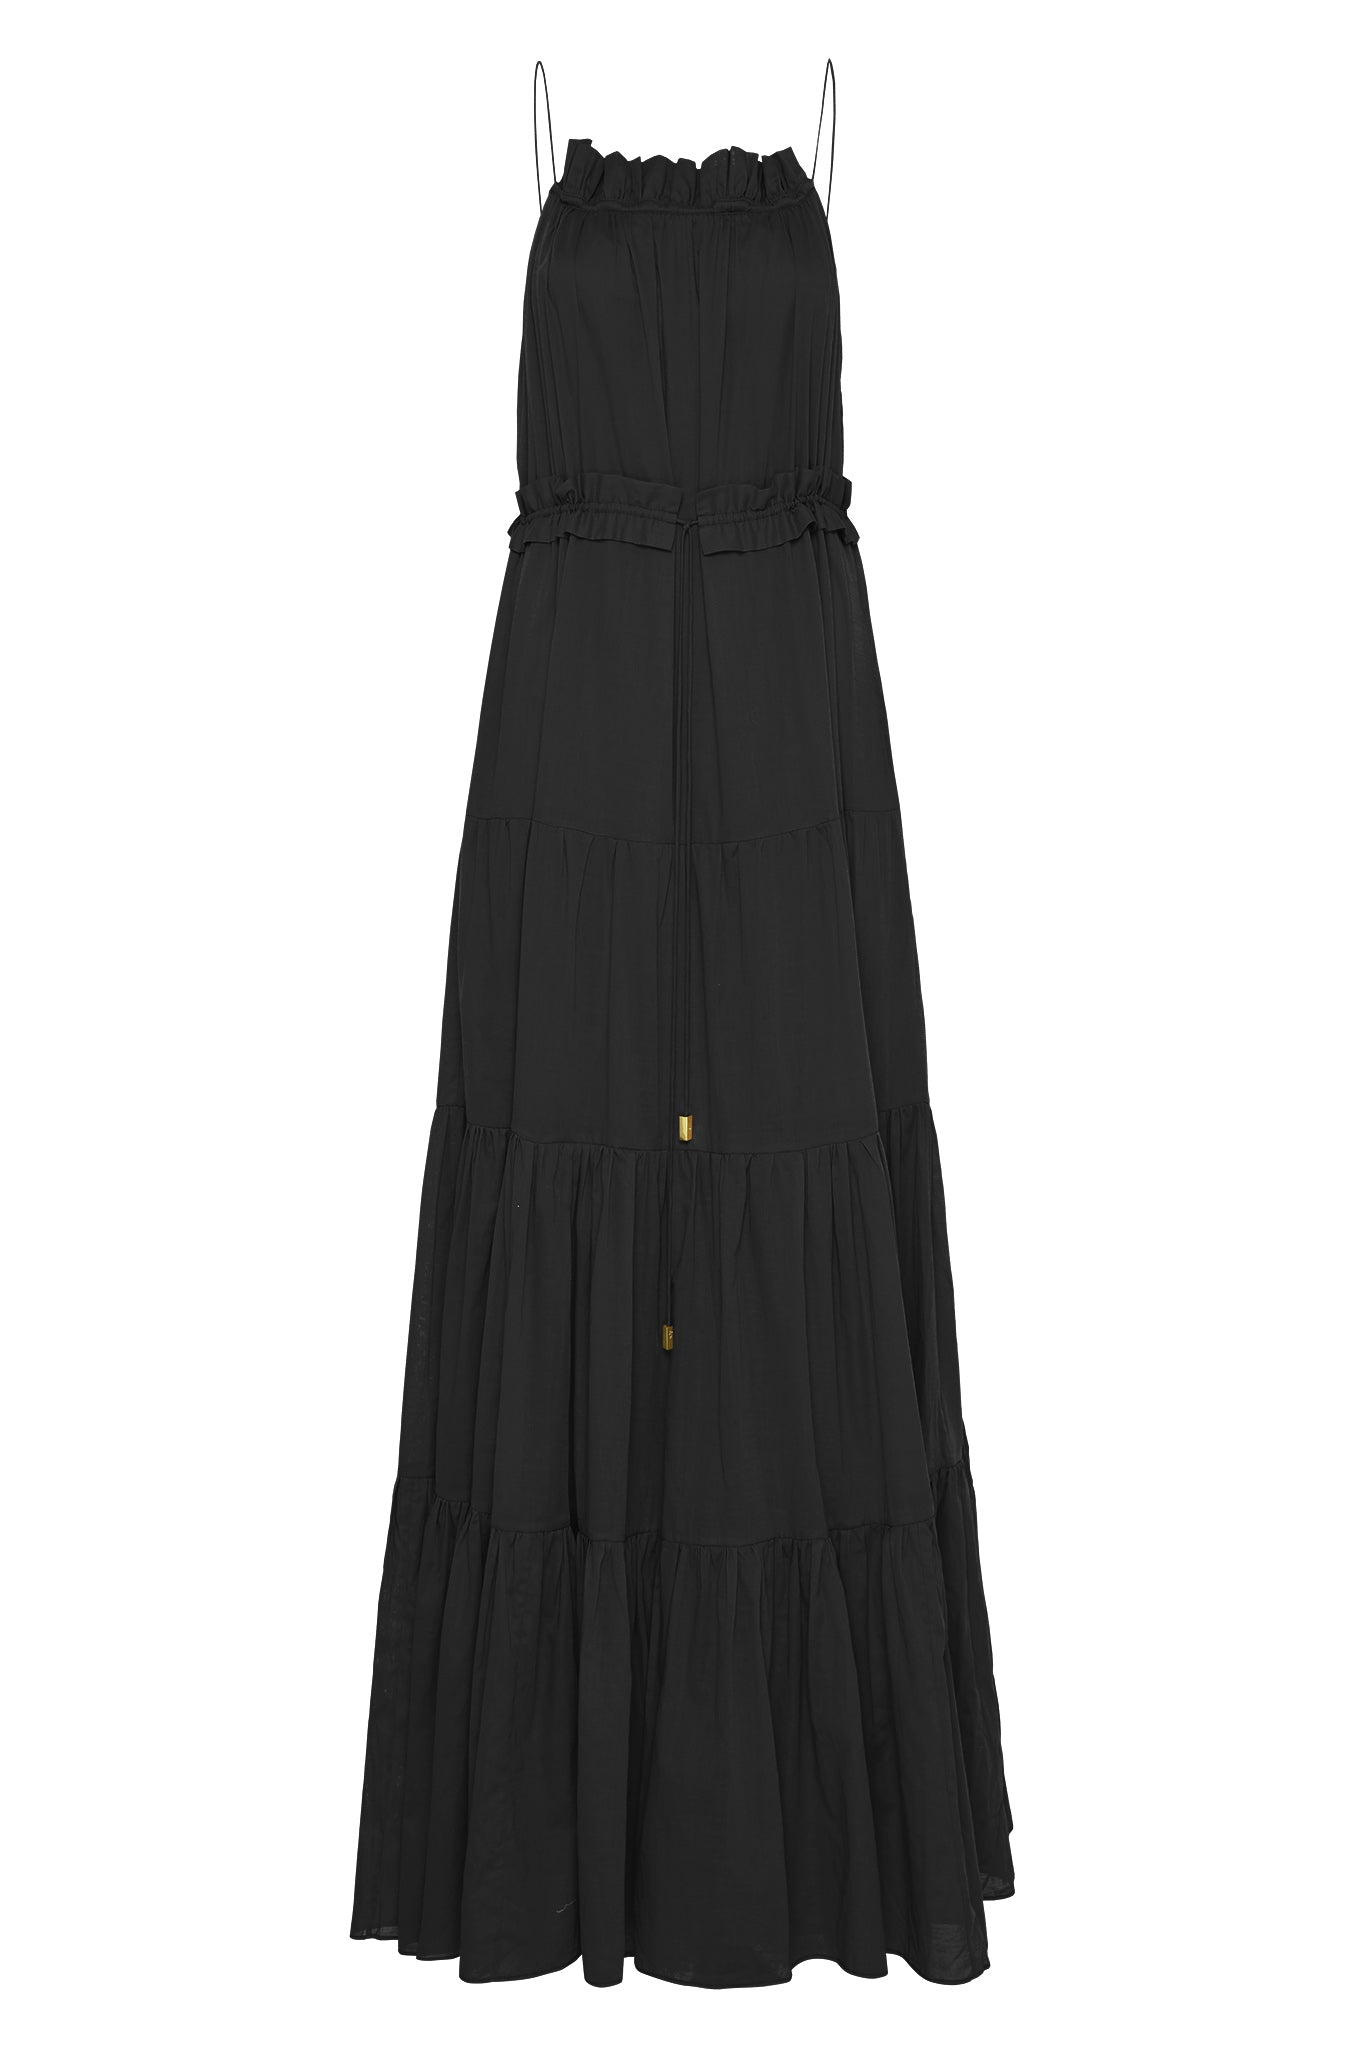 Banksia Tiered Maxi Dress Product View